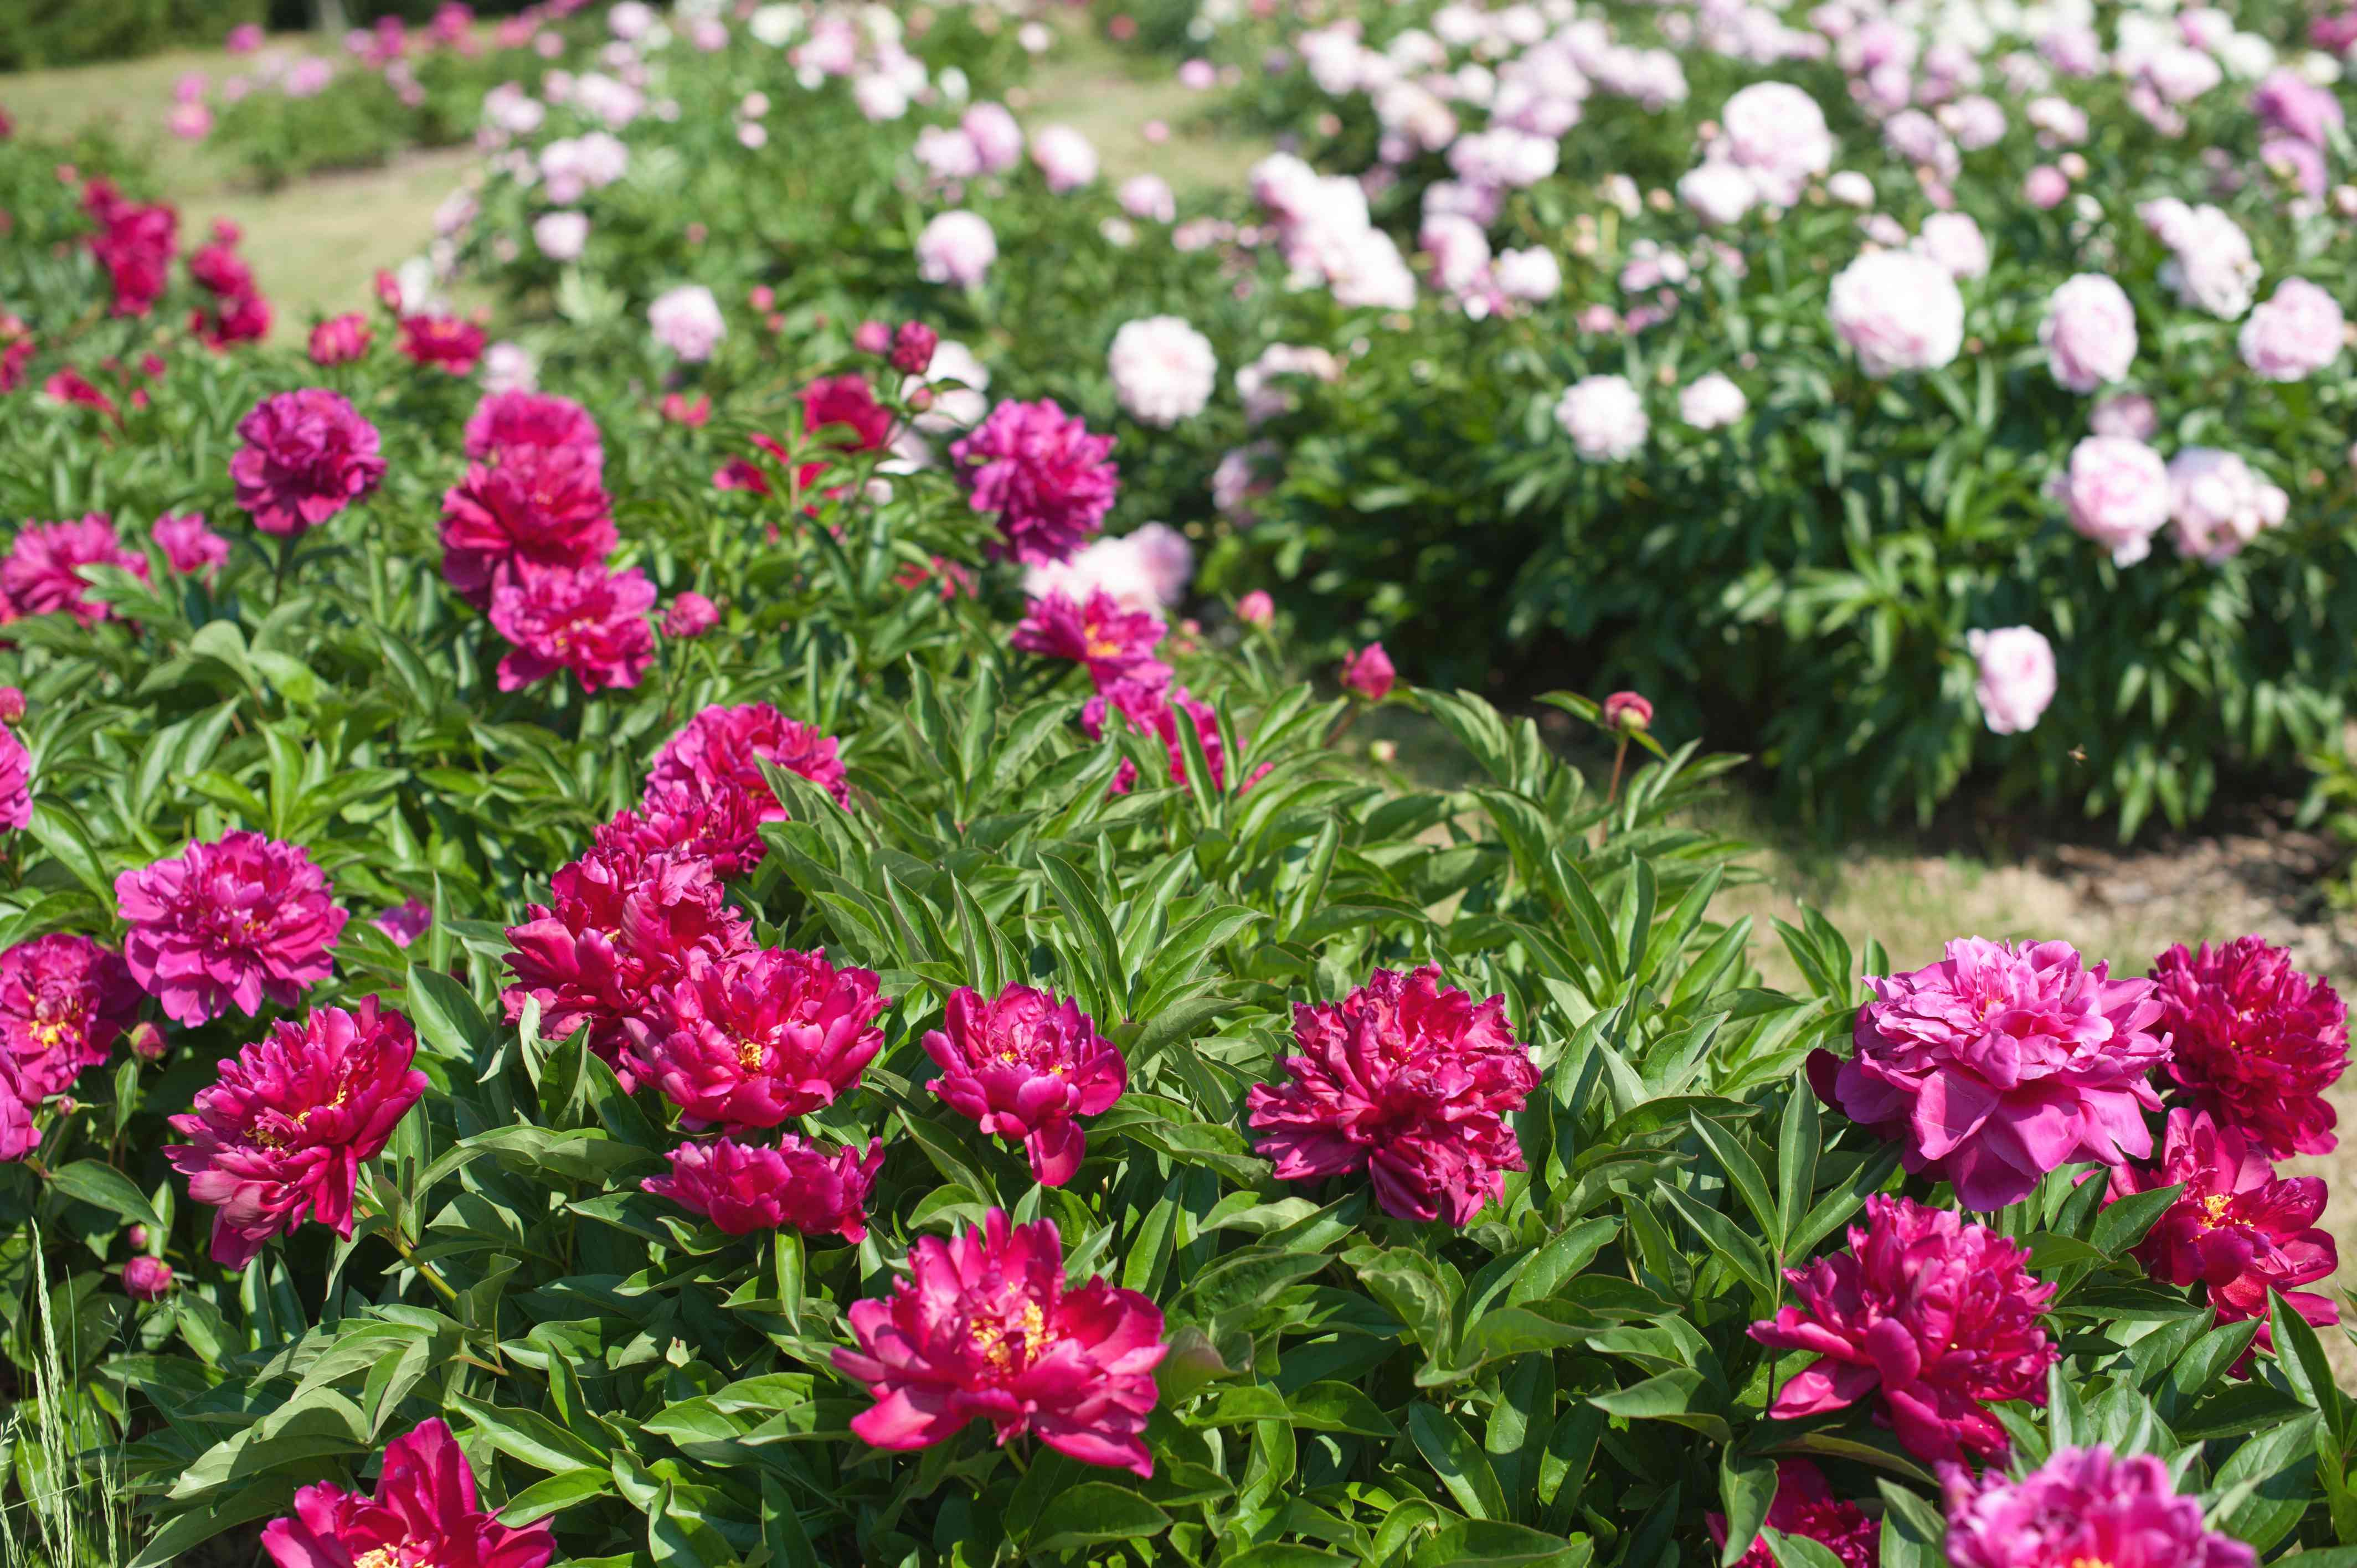 Peonies bushes with fuschia flowers and white flowers in the background